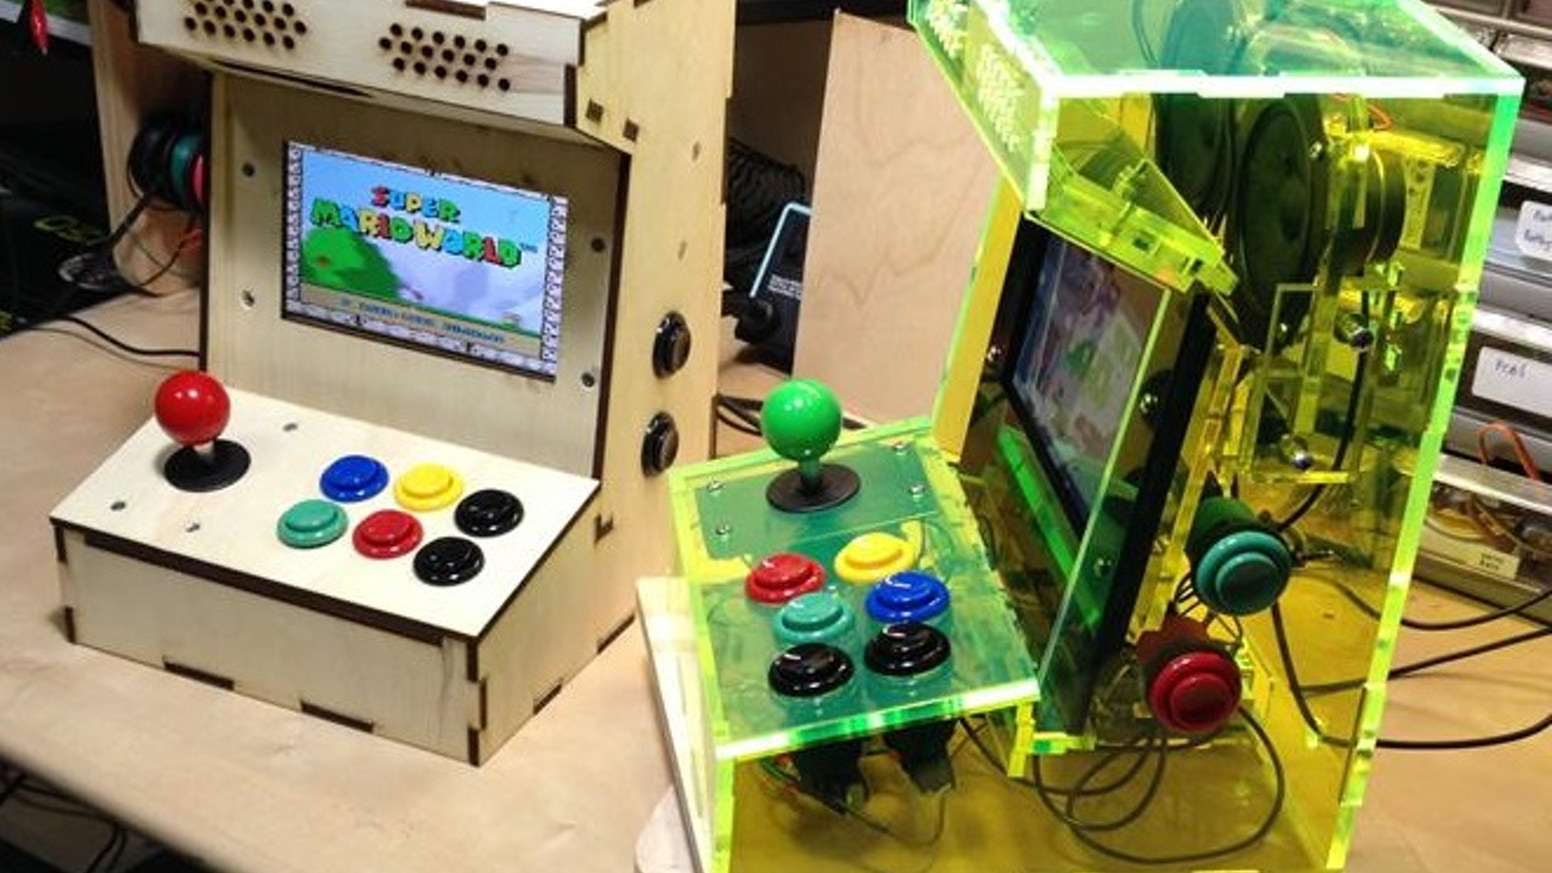 3d4e3db19751 Porta Pi Arcade  A DIY Mini Arcade Cabinet for Raspberry Pi by Ryan ...